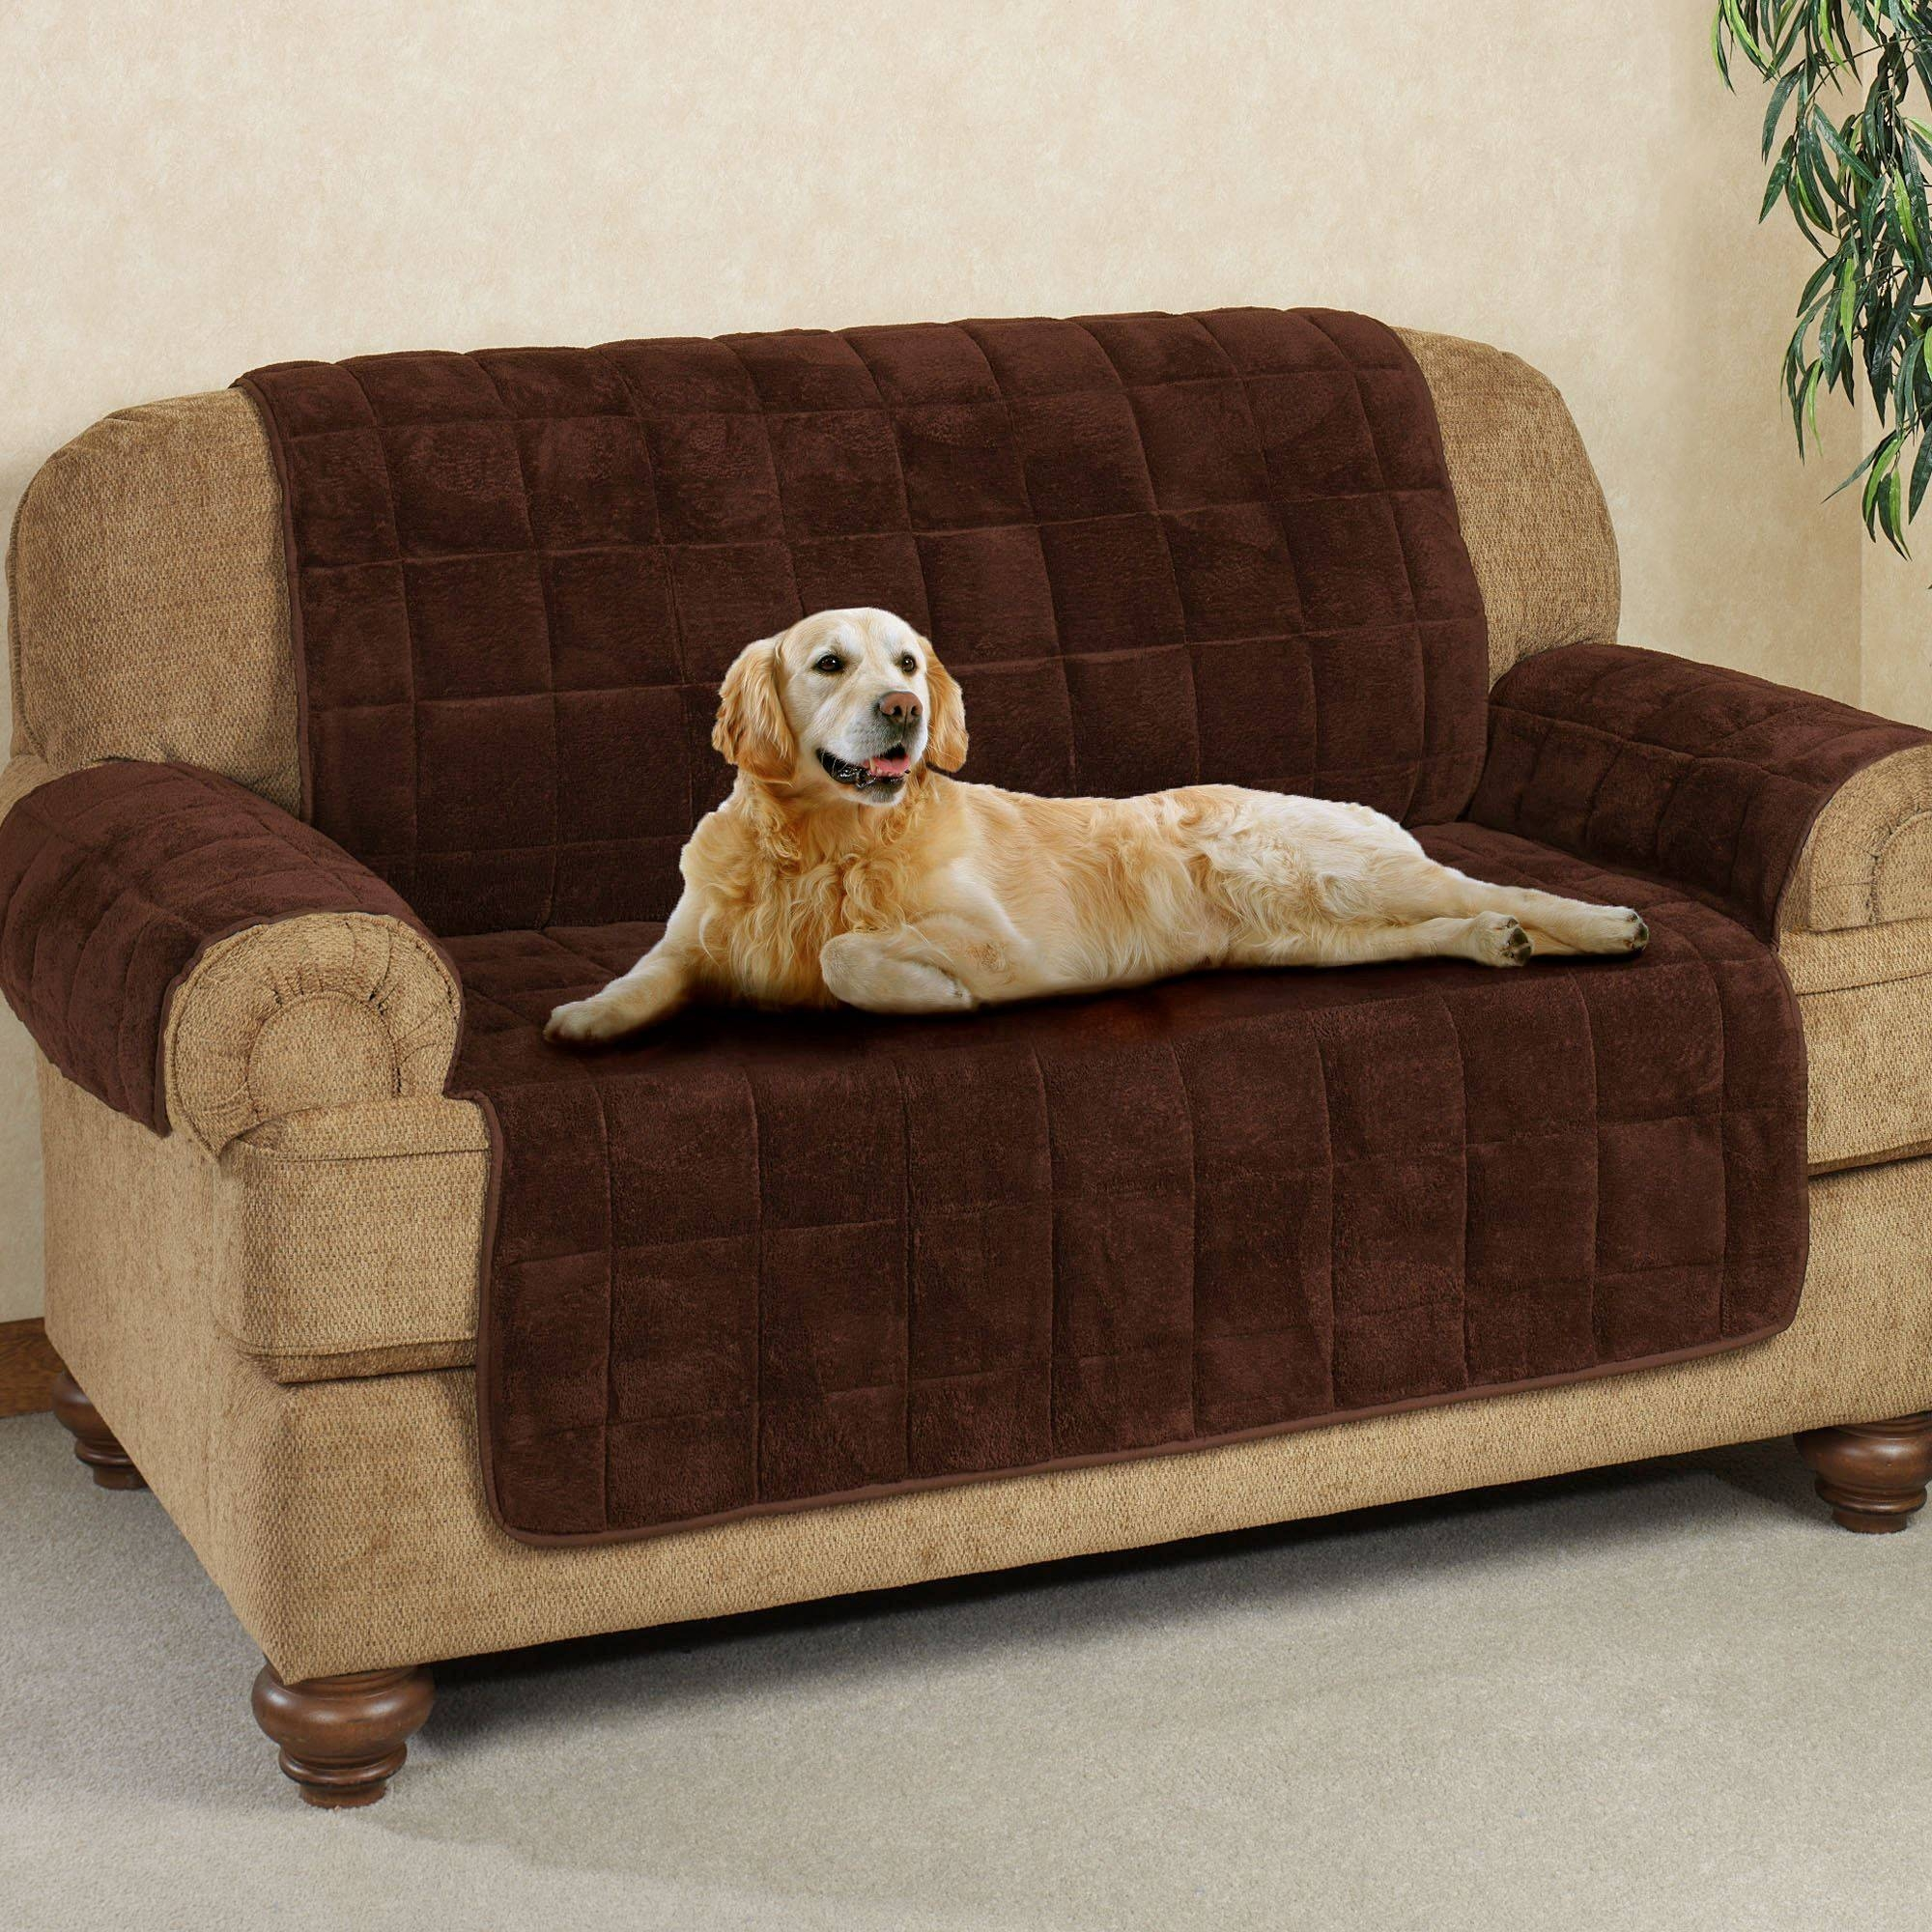 Furniture Covers, Pet Covers, Furniture Protectors | Touch Of Class with regard to Covers For Sofas (Image 4 of 30)